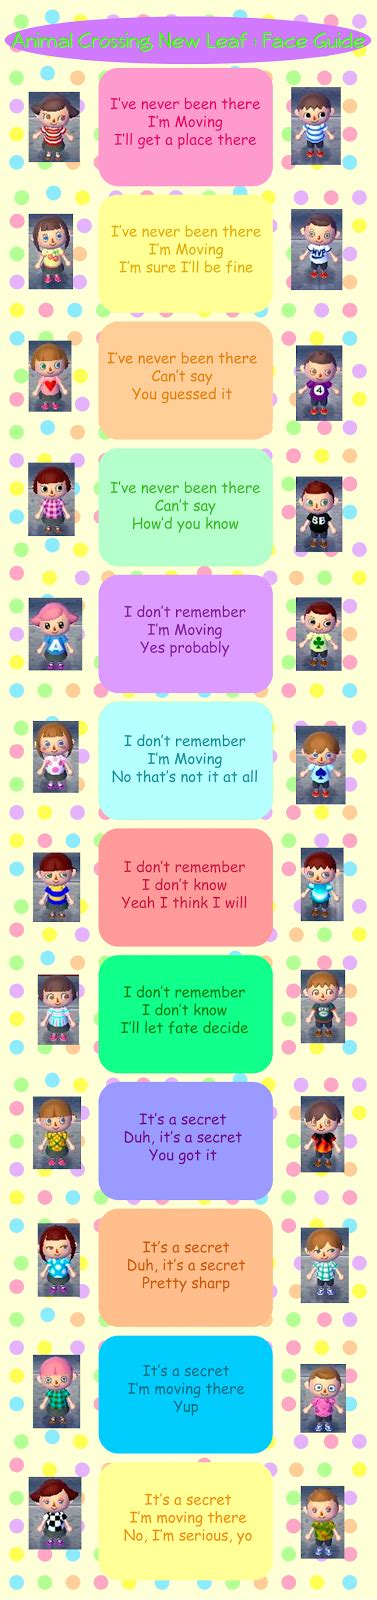 animal crossing new leaf shoodle hair for girls hair styles at the shoodle in animal crossing new leaf